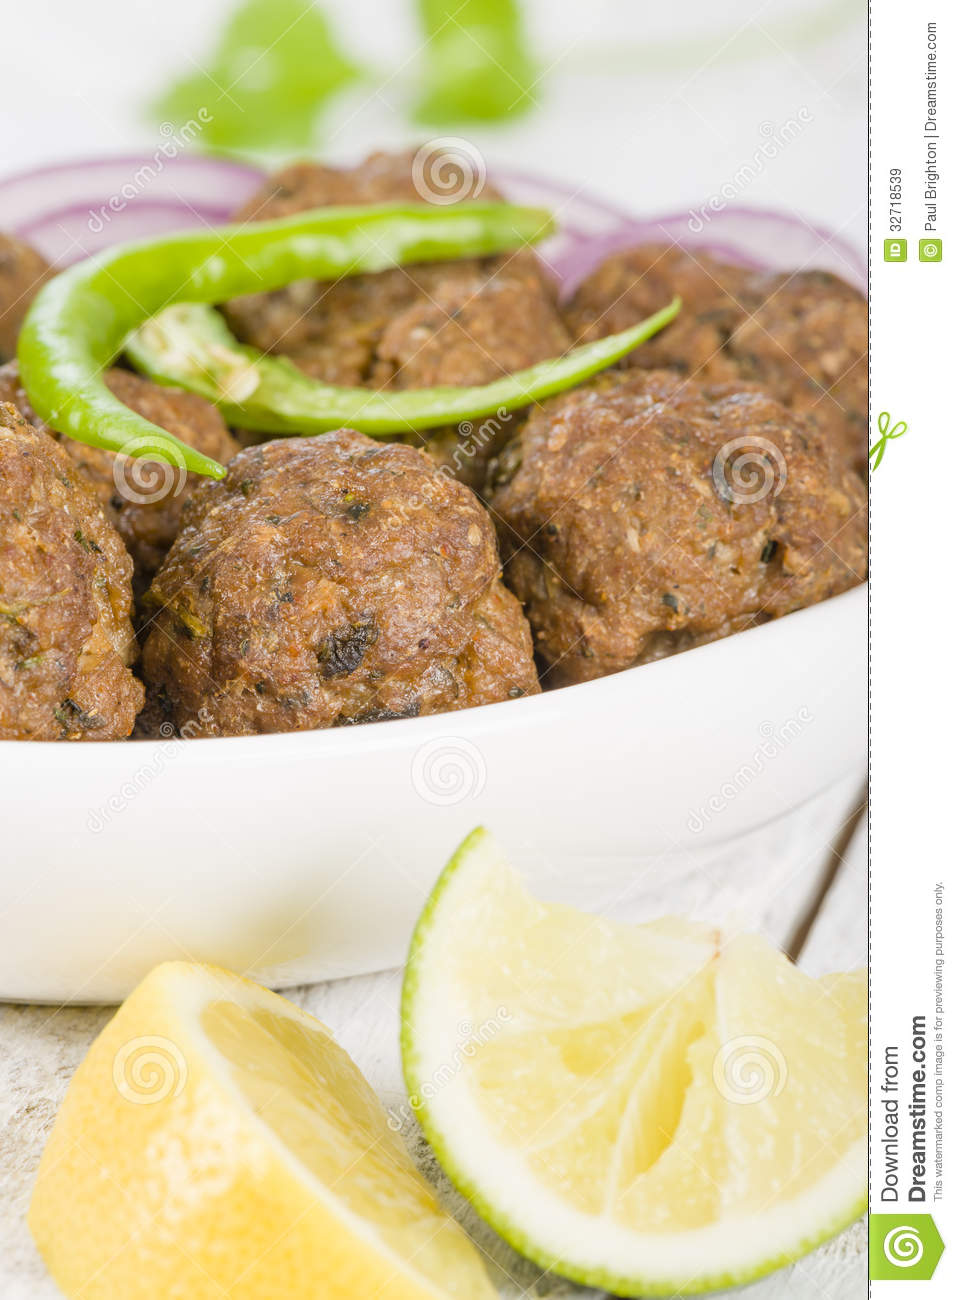 Kofta - South Asian spicy meatballs garnished with green chilies and ...